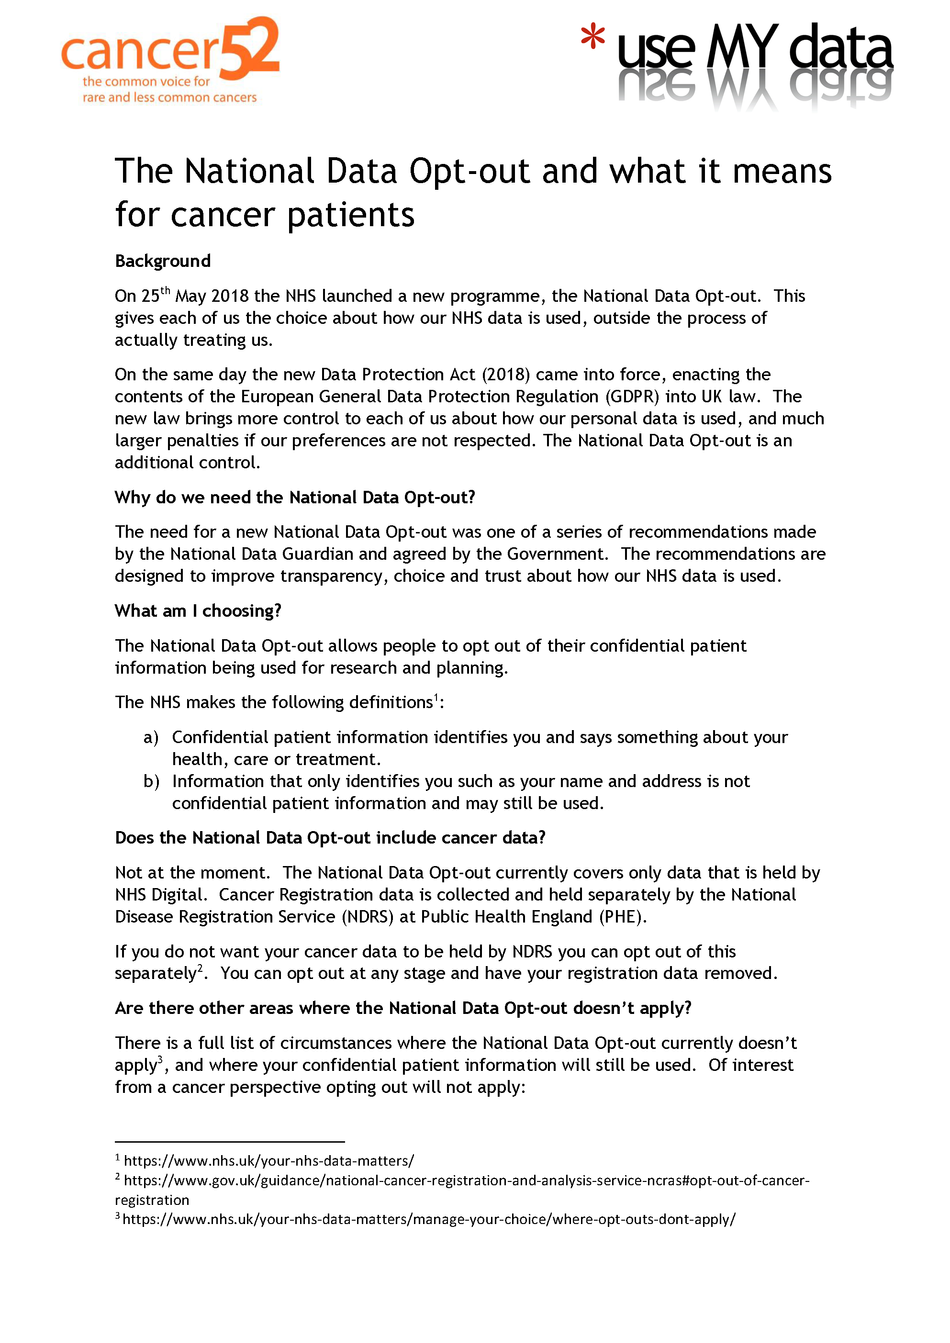 National Data Opt-out and what it means to cancer patients